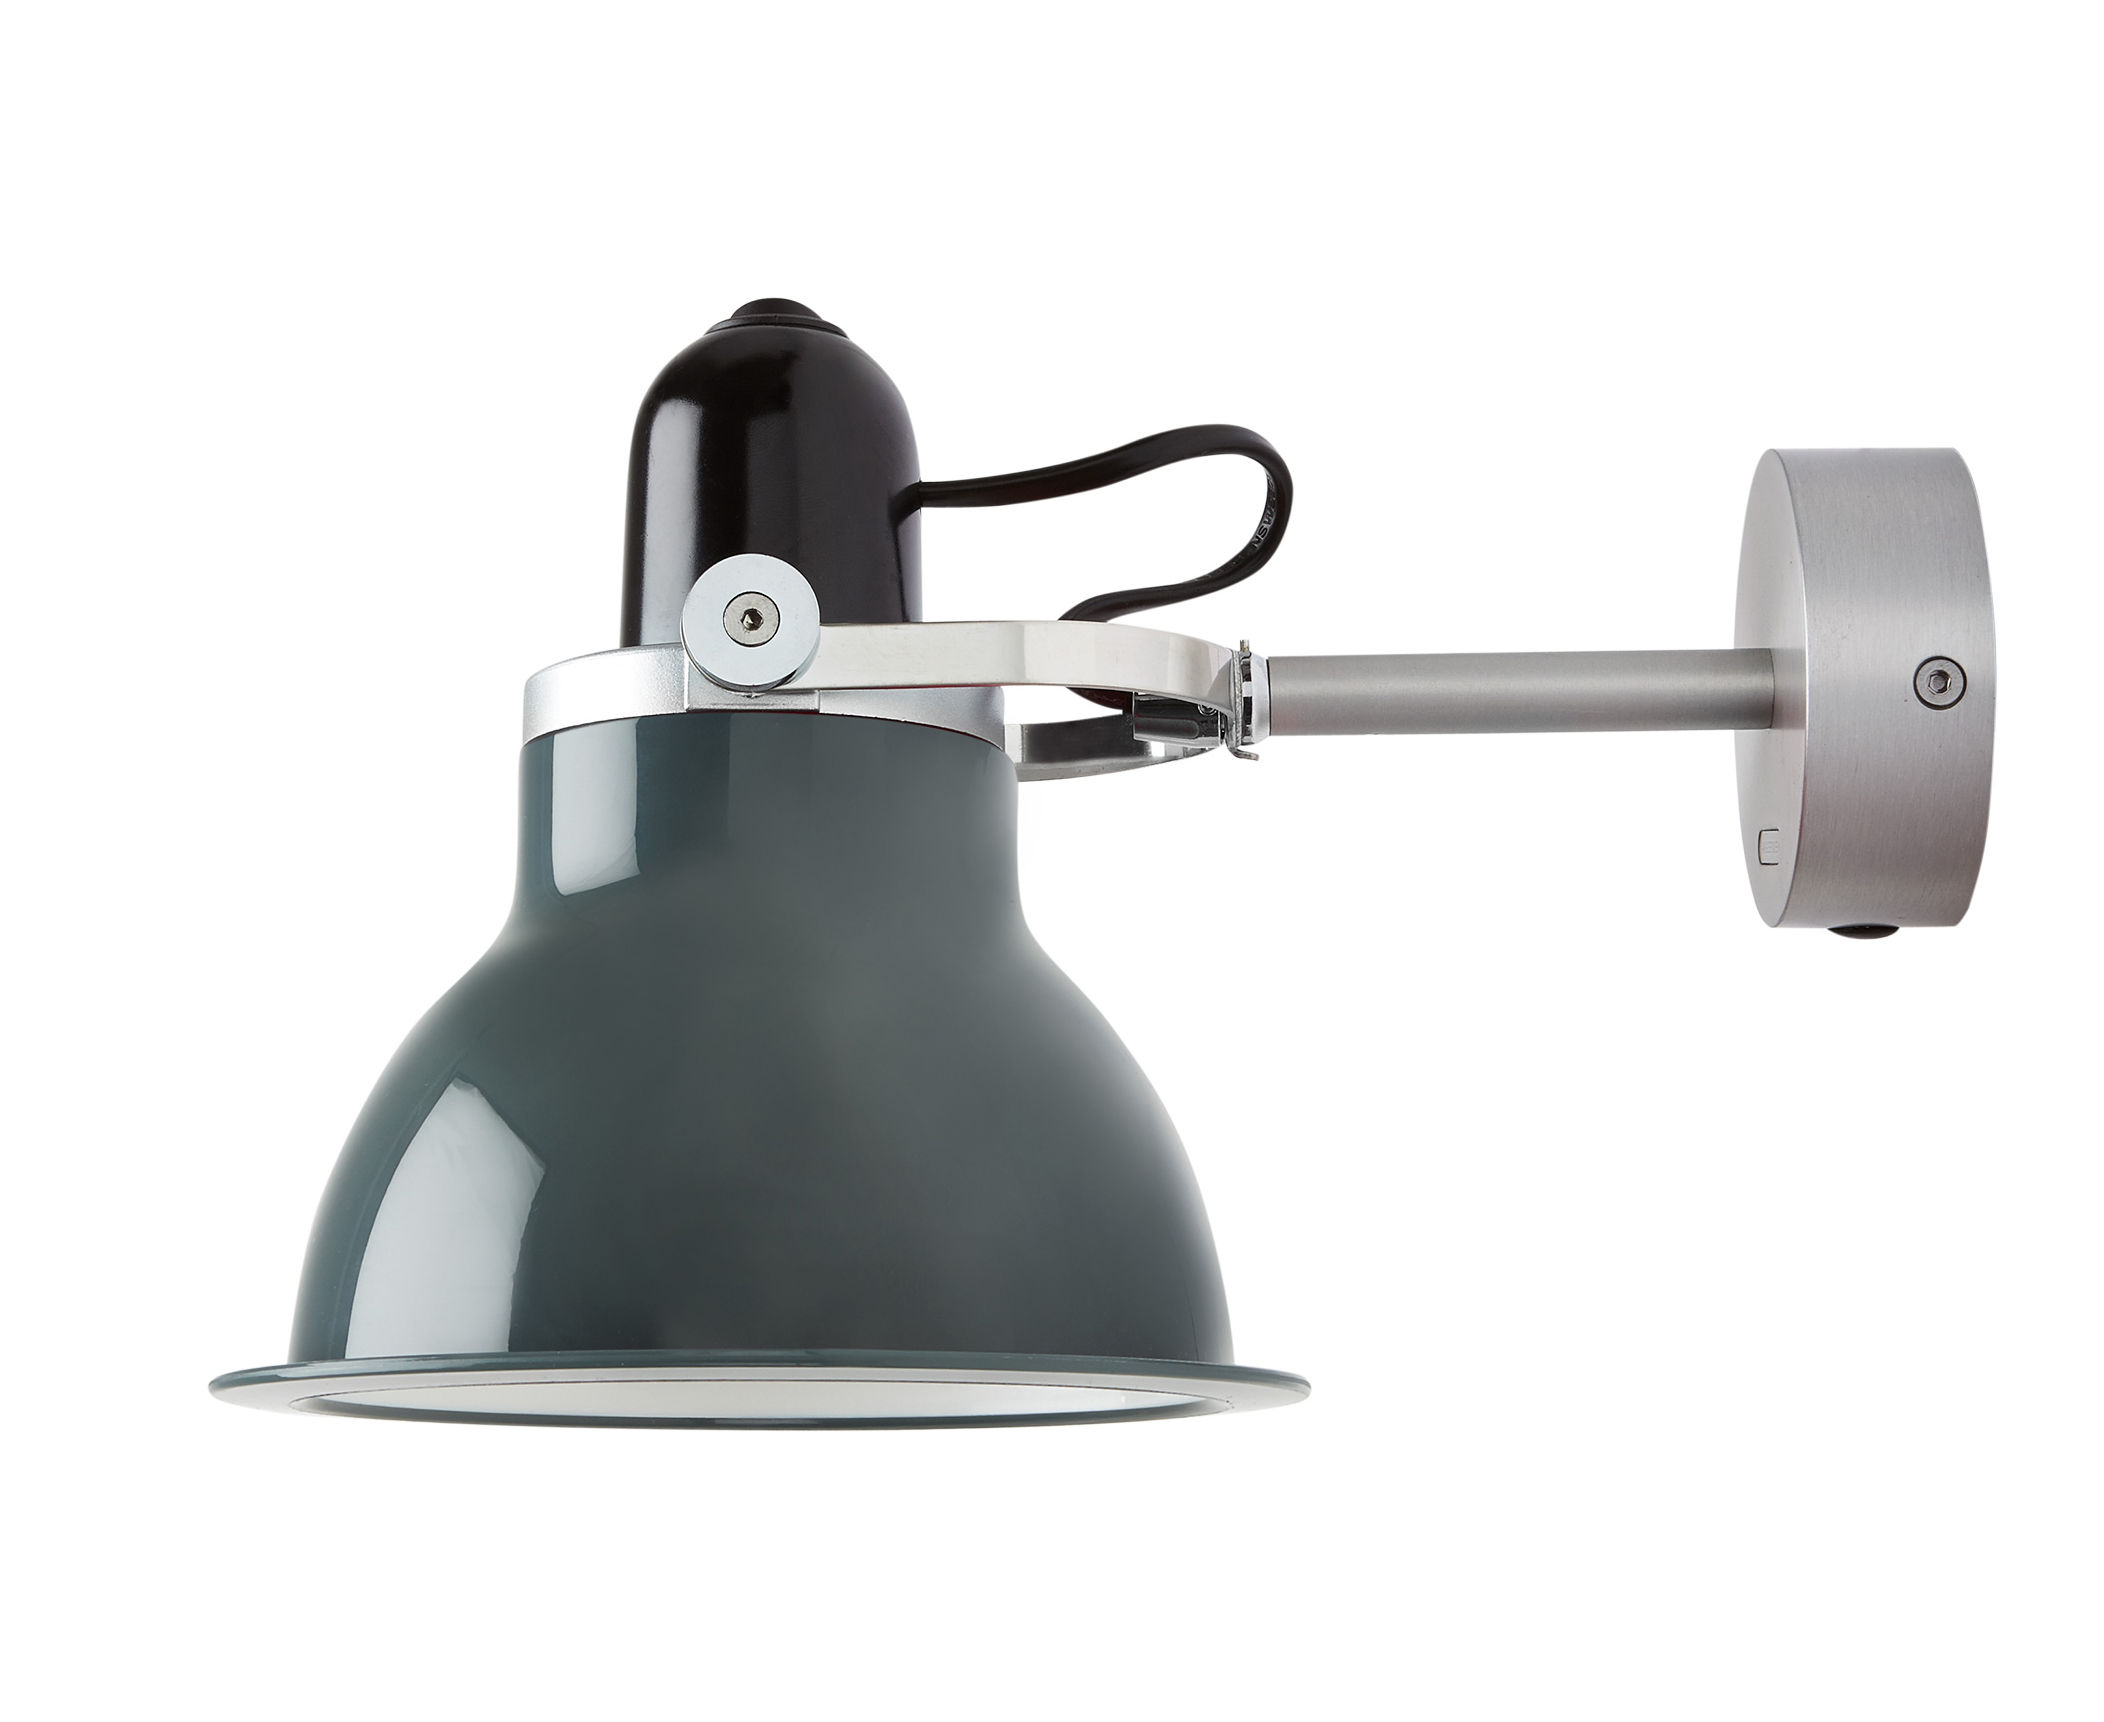 Lighting - Wall Lights - Type 1228 Wall light - Wall lamp by Anglepoise - Grey - Metal, Polycarbonate